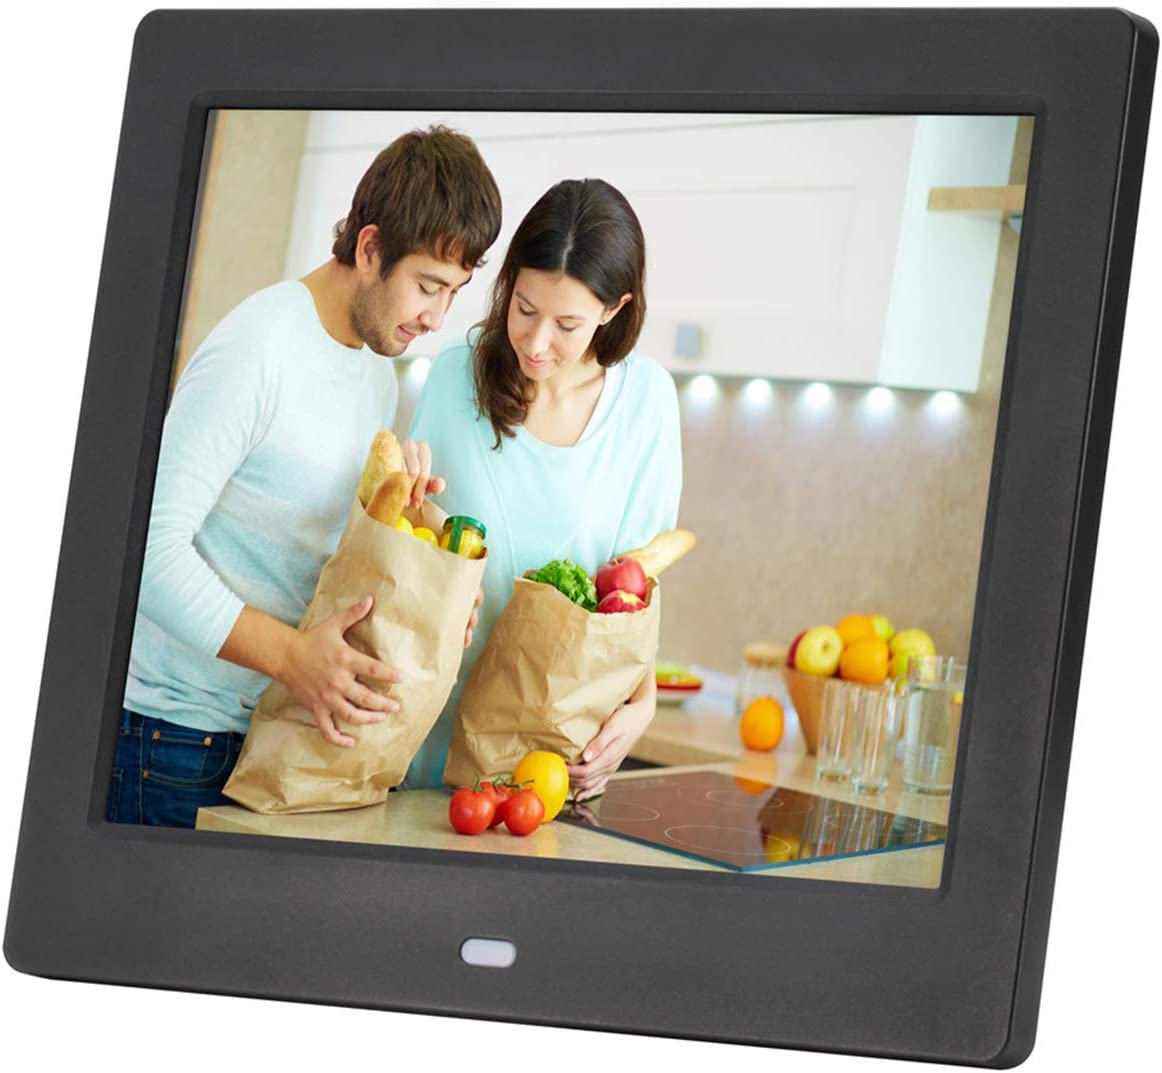 ACOWSUN Digital Picture Frame 12 Inch HD 1280X800 Plastic case Can Play Photos Music Videos When Insert Photo Frames USB SD with Remote Control and 4G SD Card Include